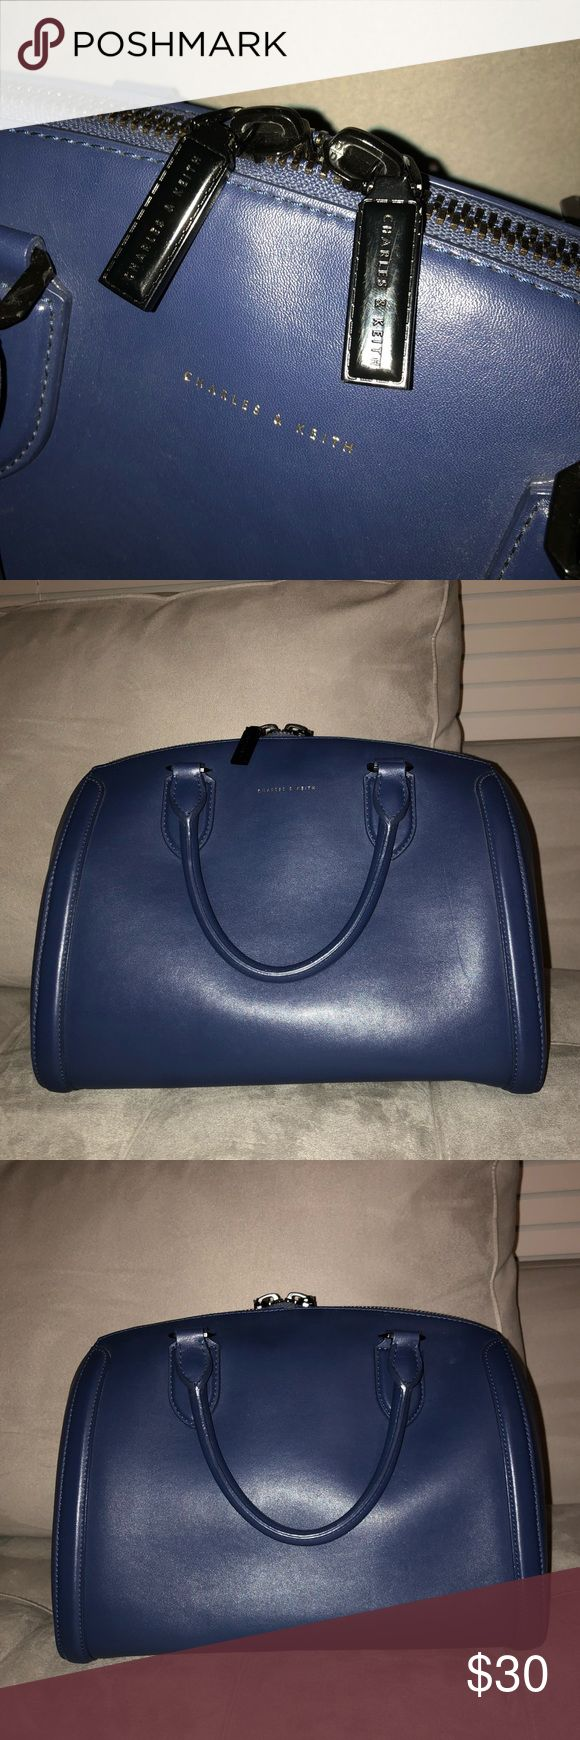 Charles & Keith Blue Handbag Large roomy handbag!  Trying to clear my closet, make an offer! Charles & Keith Bags